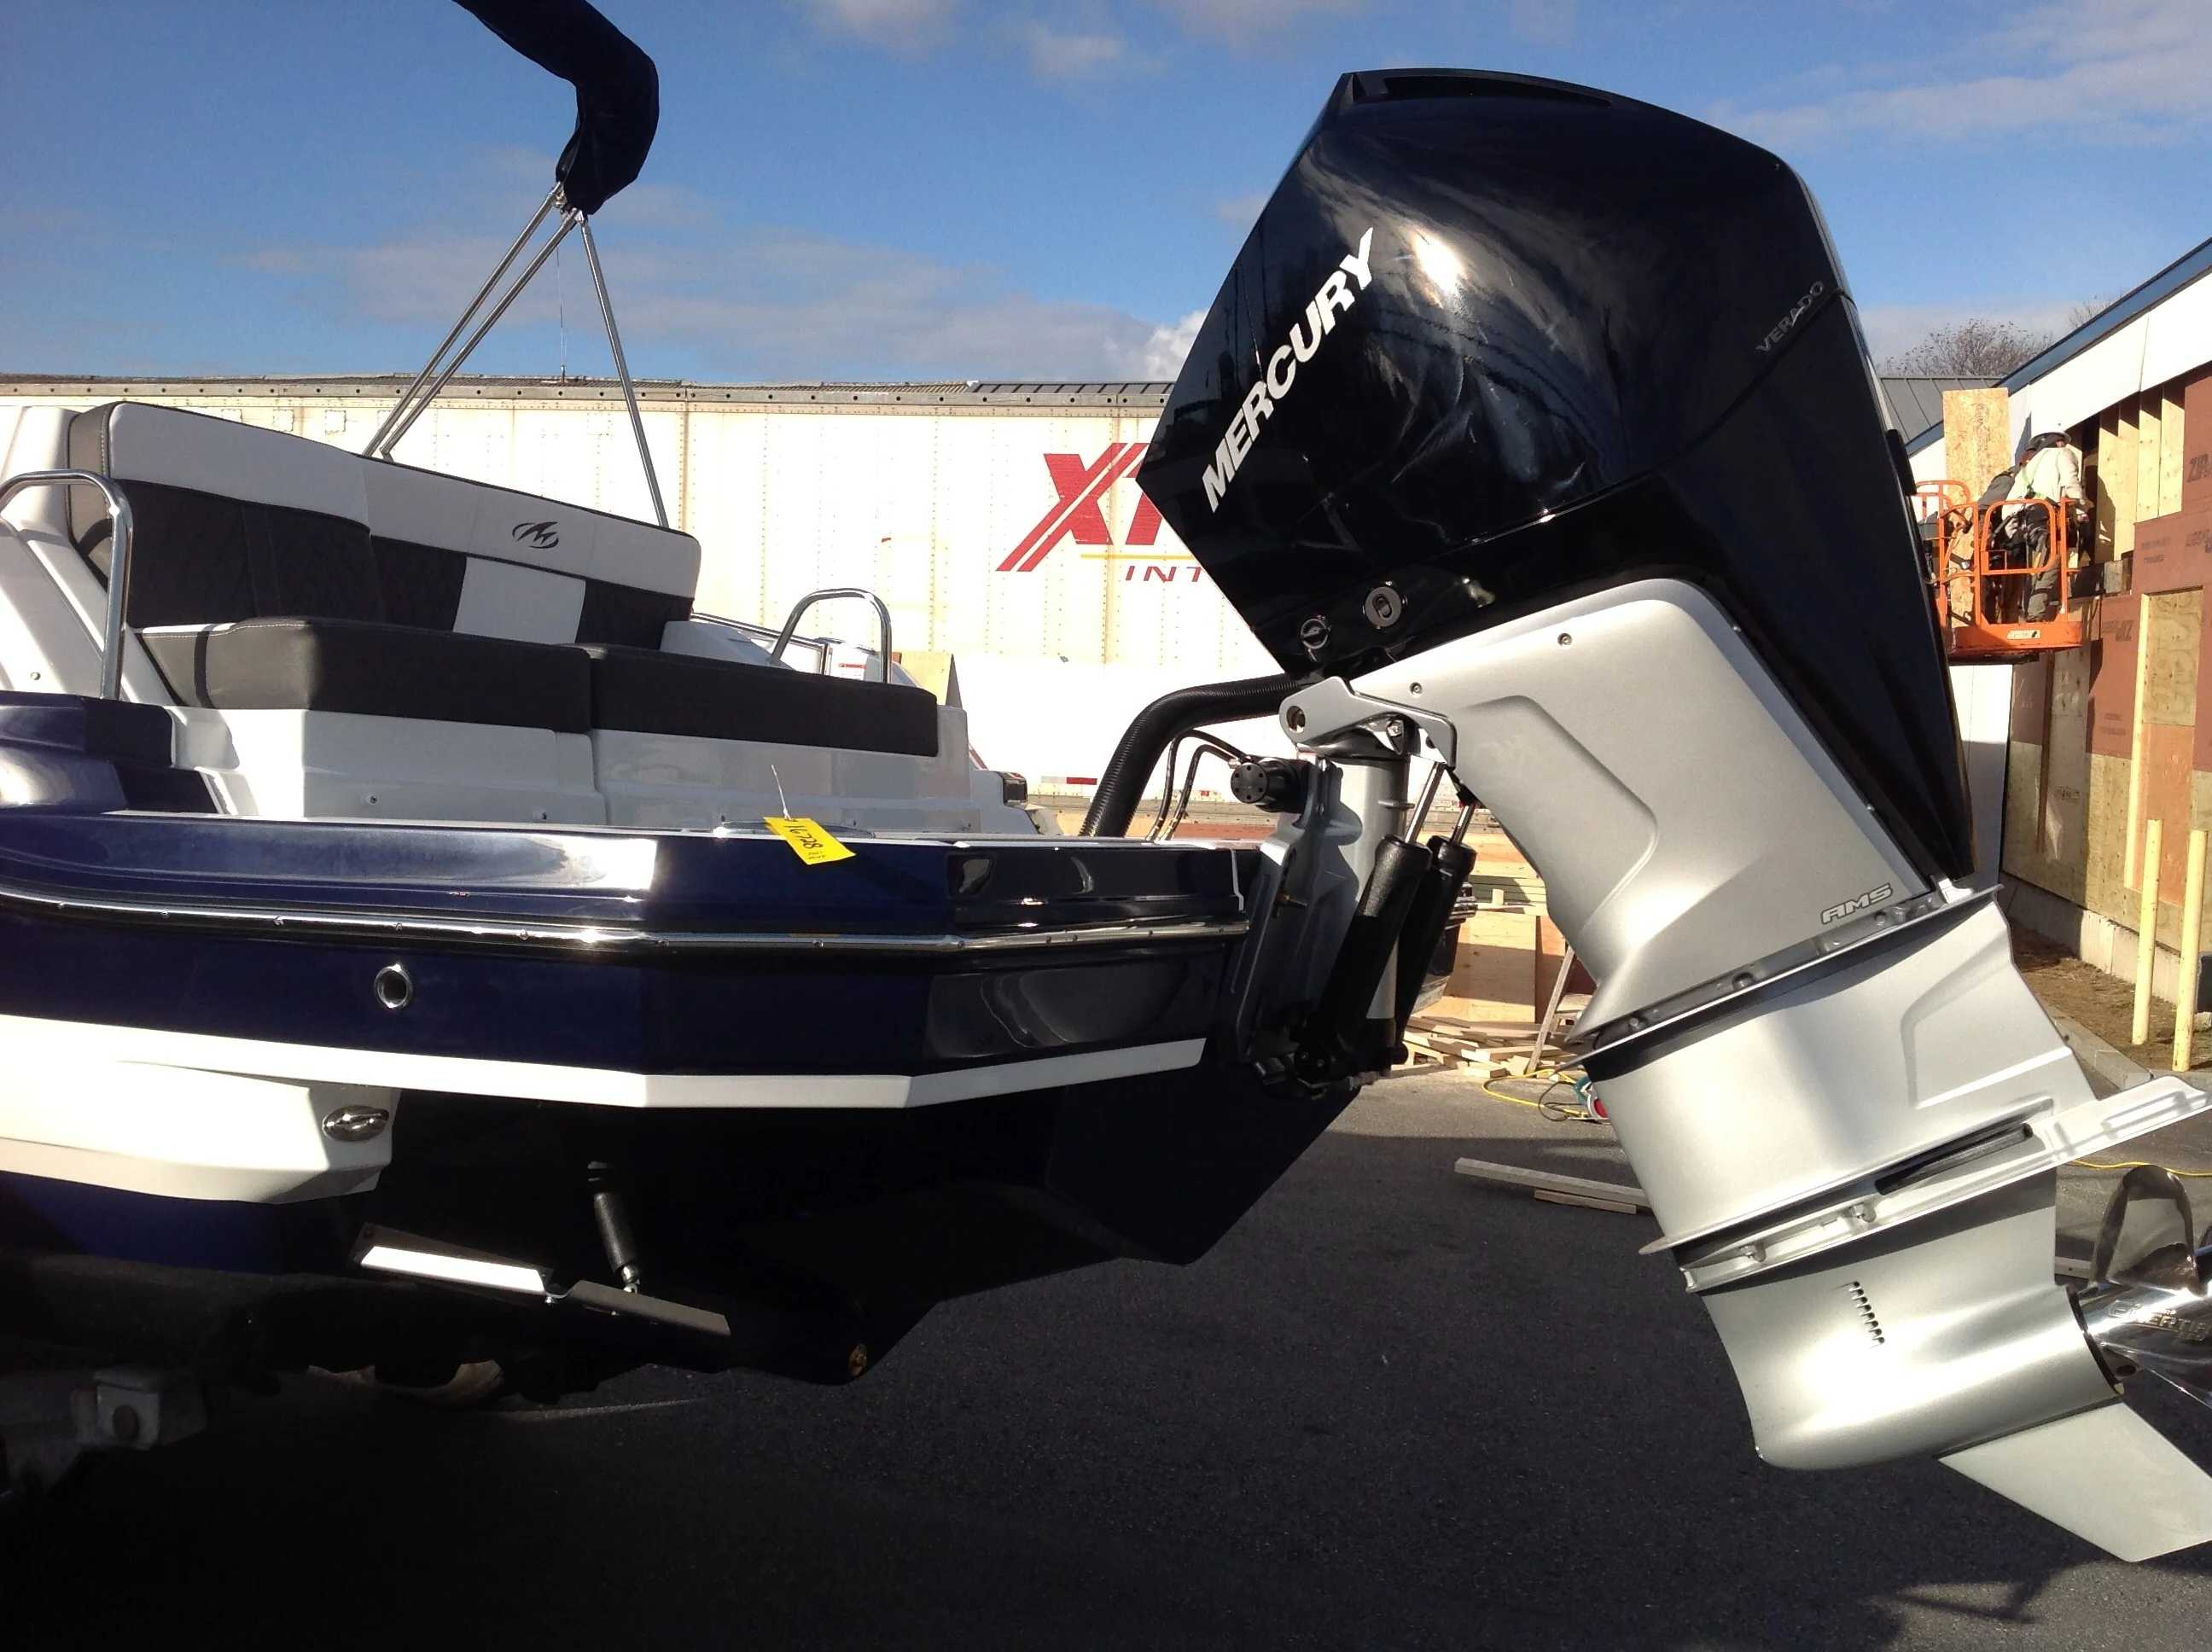 2021 Monterey boat for sale, model of the boat is M45 & Image # 19 of 21